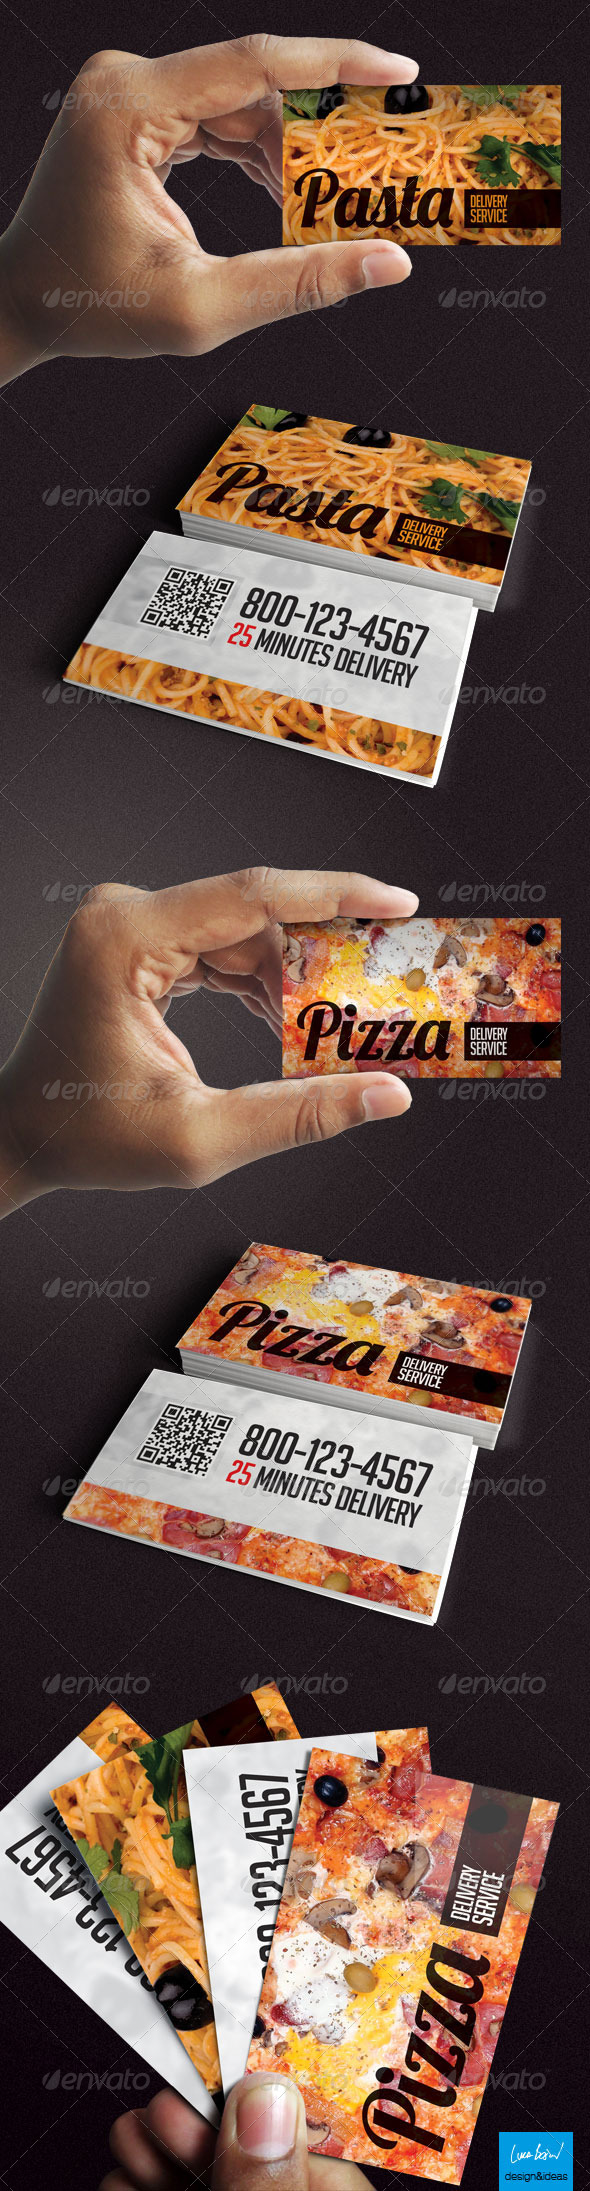 GraphicRiver Pizza & Pasta Delivery Business Card 4057457